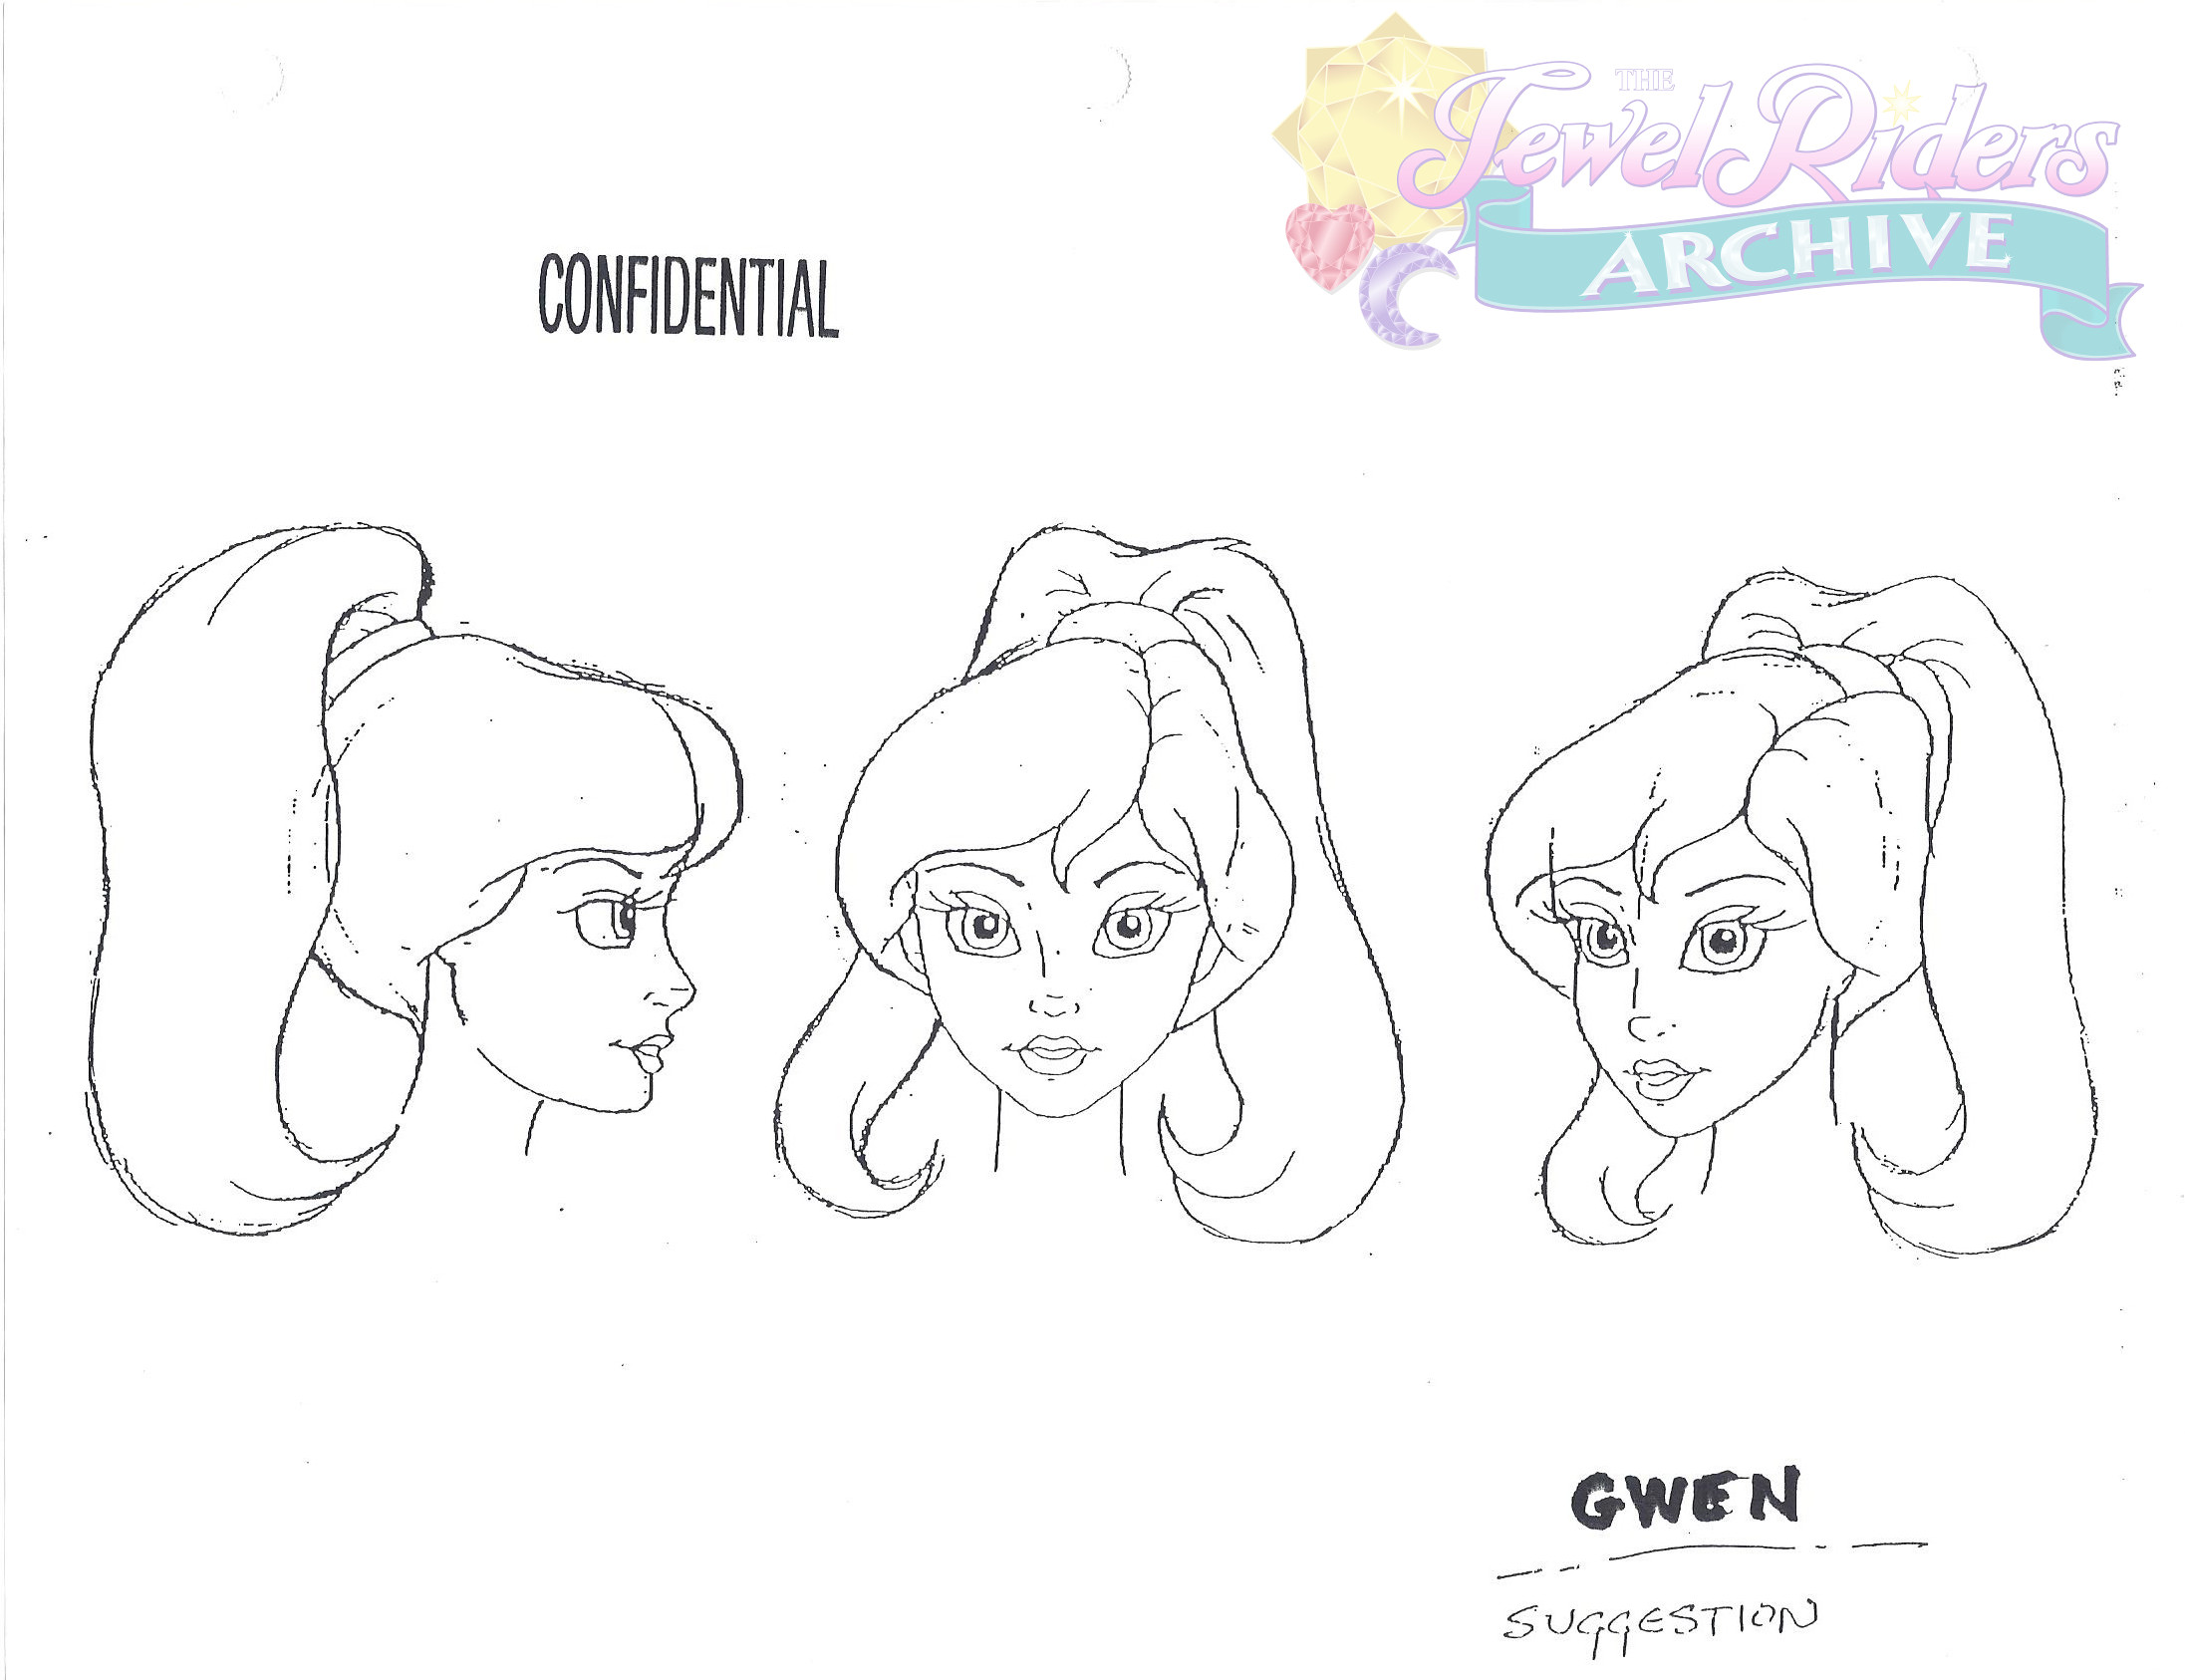 Gwenevere - Watermarked